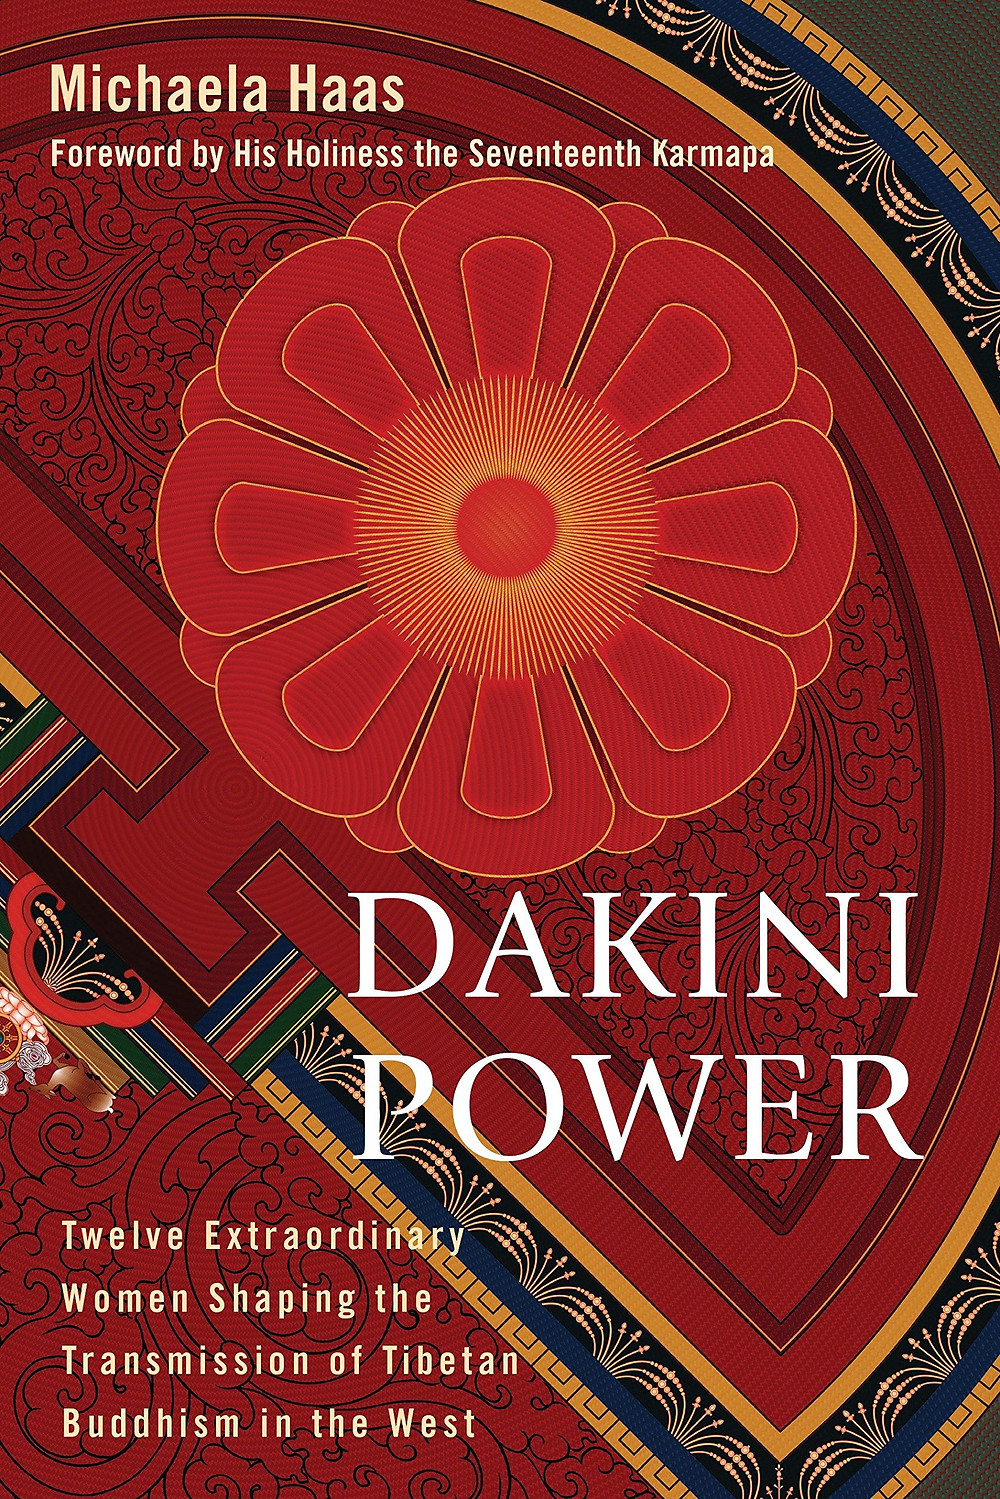 Dakini Power: Twelve Extraordinary Women Shaping the Transmission of Tibetan Buddhism in the West by Michaela Haas, His Holiness the Karmapa.